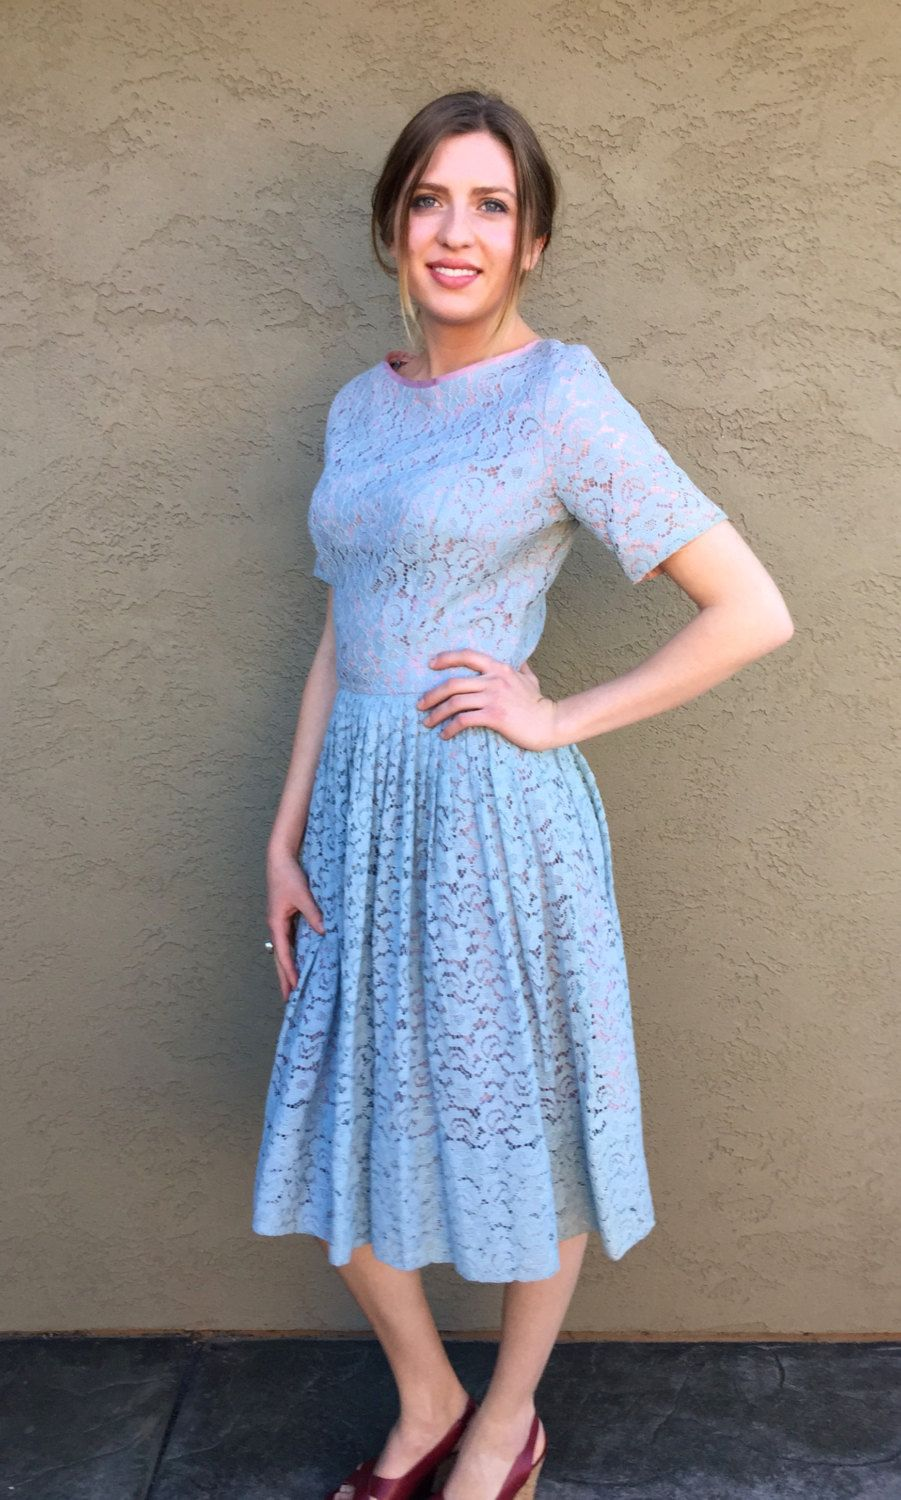 4ac2ddaa6c Vintage 50s Blue Lace Dress Short Sleeve Dress XS-S Fabulous Baby ...